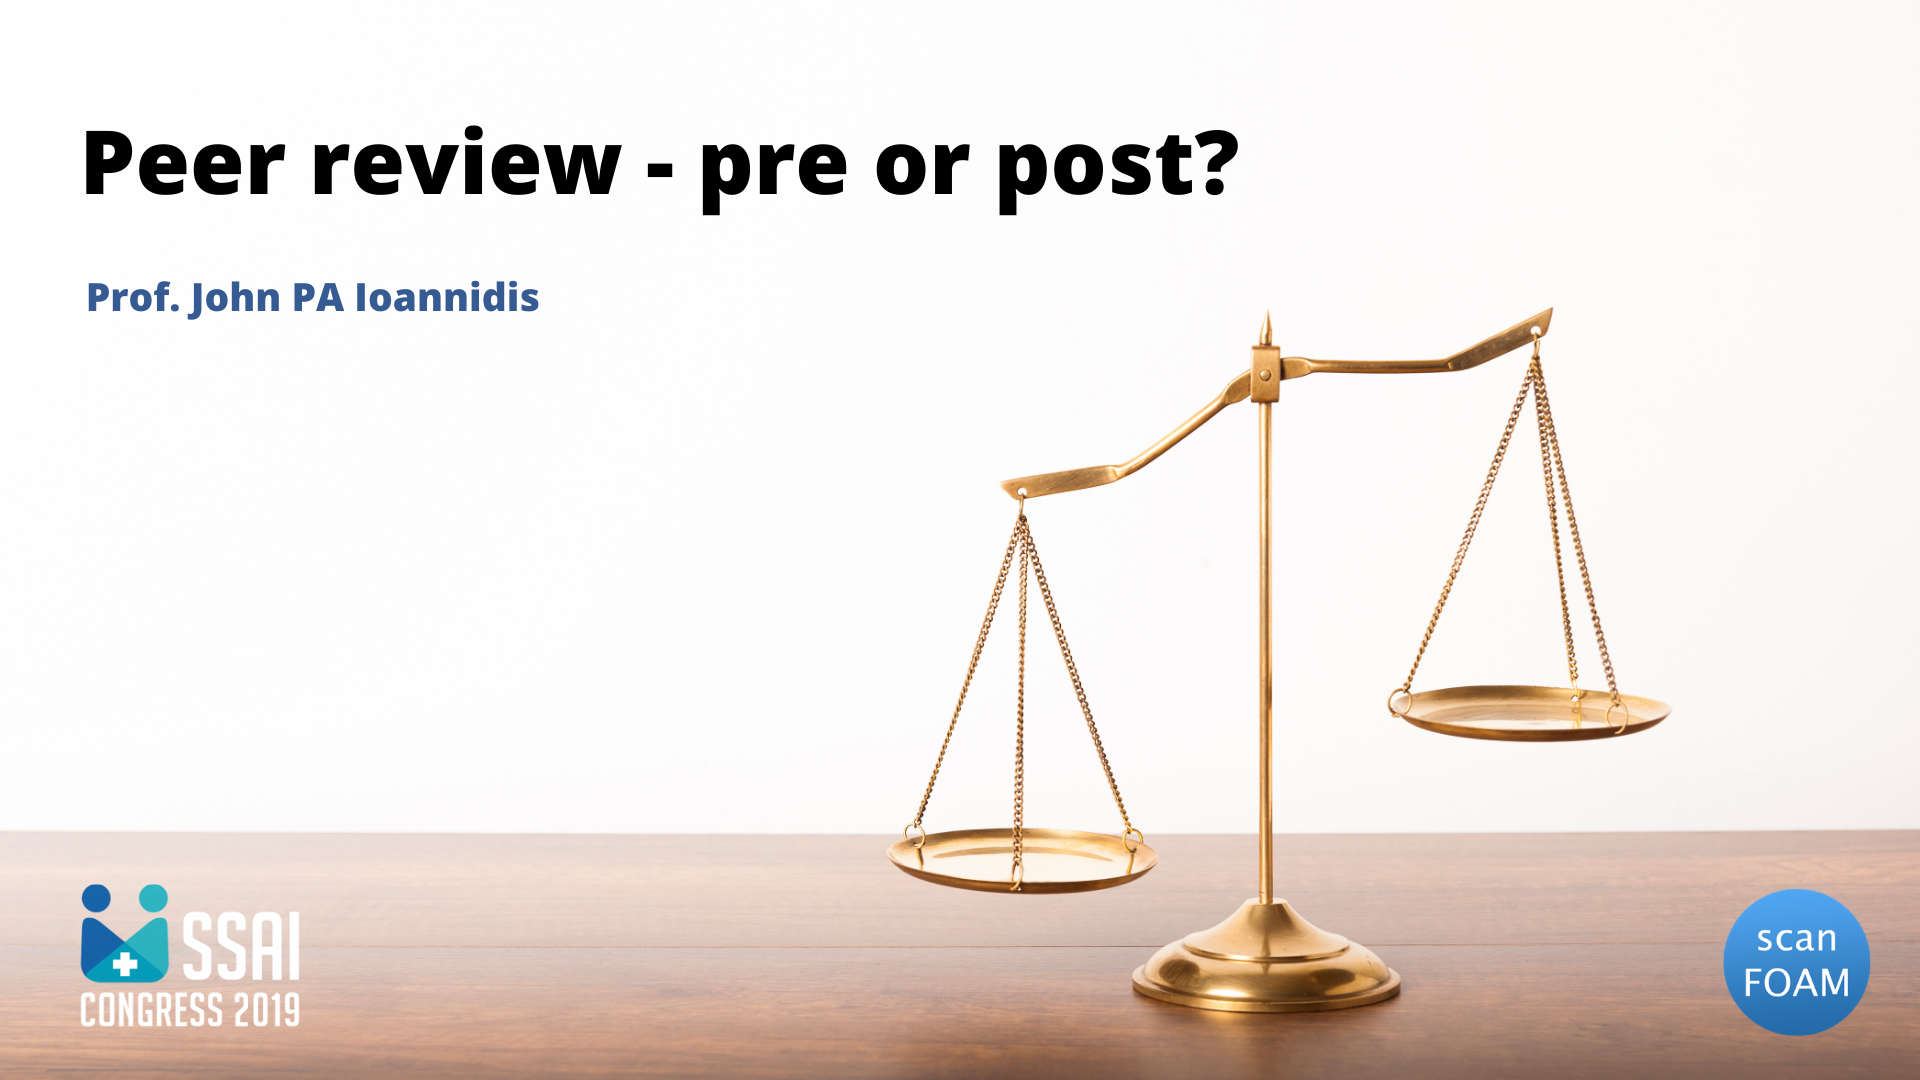 Peer review – pre or post? | John PA Ioannidis | SSAI2019